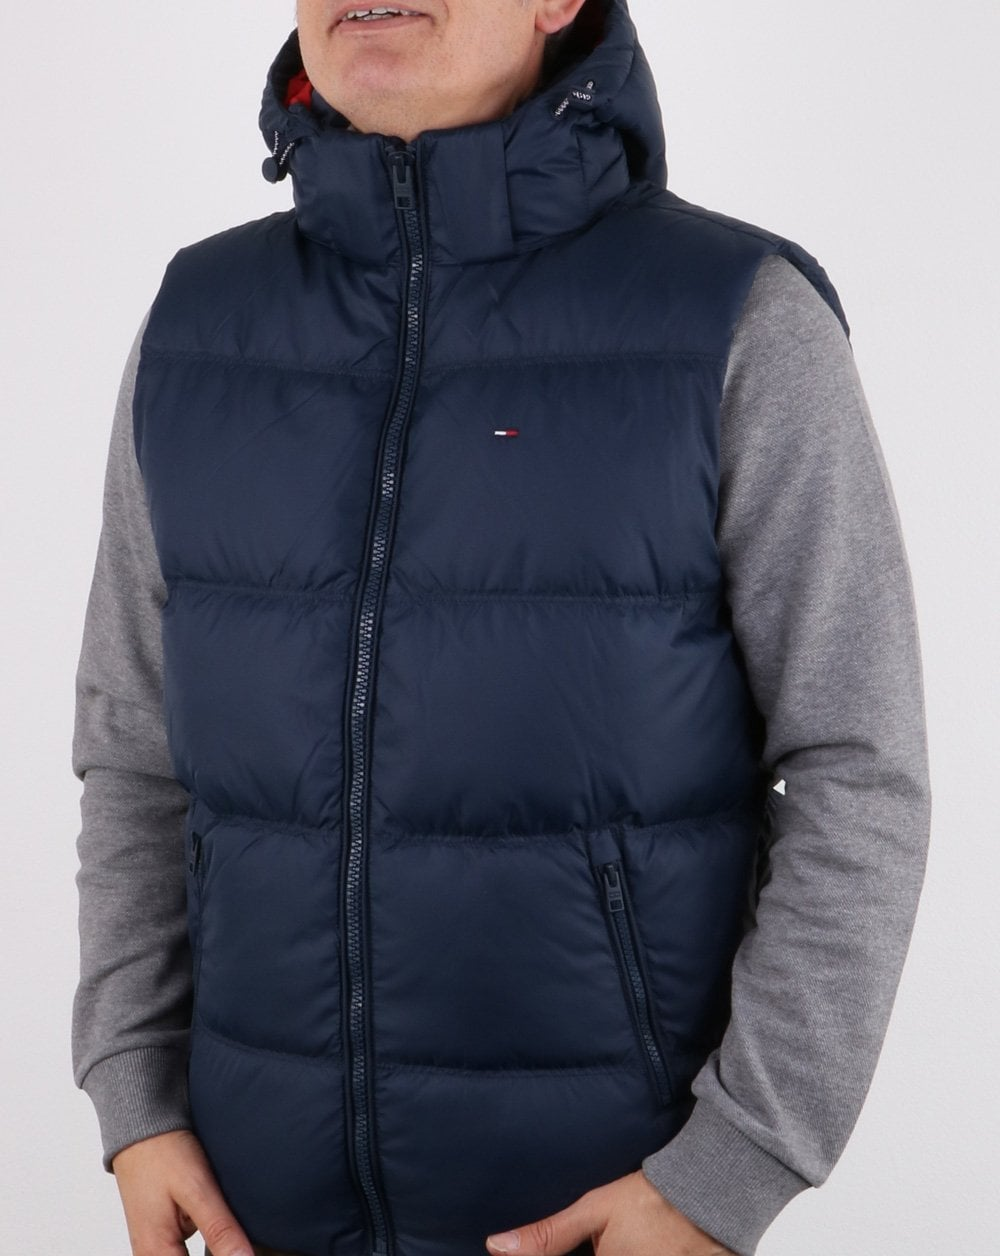 0b9d4821 Tommy Hilfiger Down Gilet Navy,Mens, Coat, Jacket, Winter, Warm